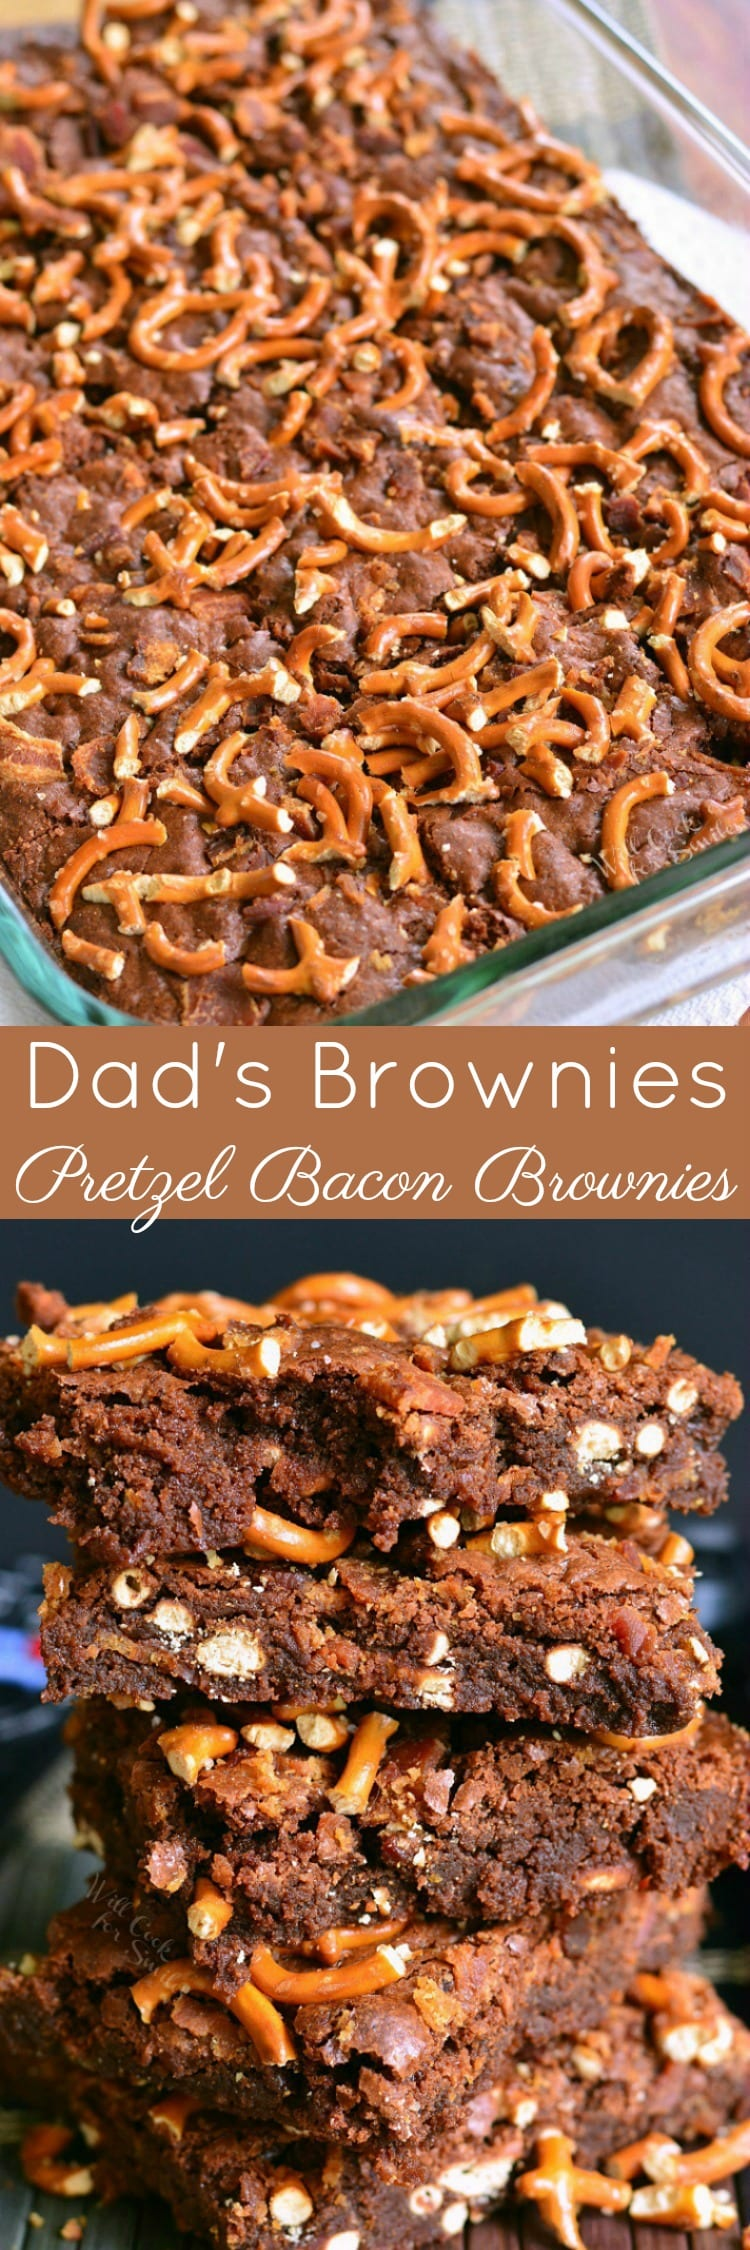 Dad's Brownies aka Pretzel Bacon Brownies. Soft, moist, sweet and salty bacon brownies that will make any dad's dreams come true.